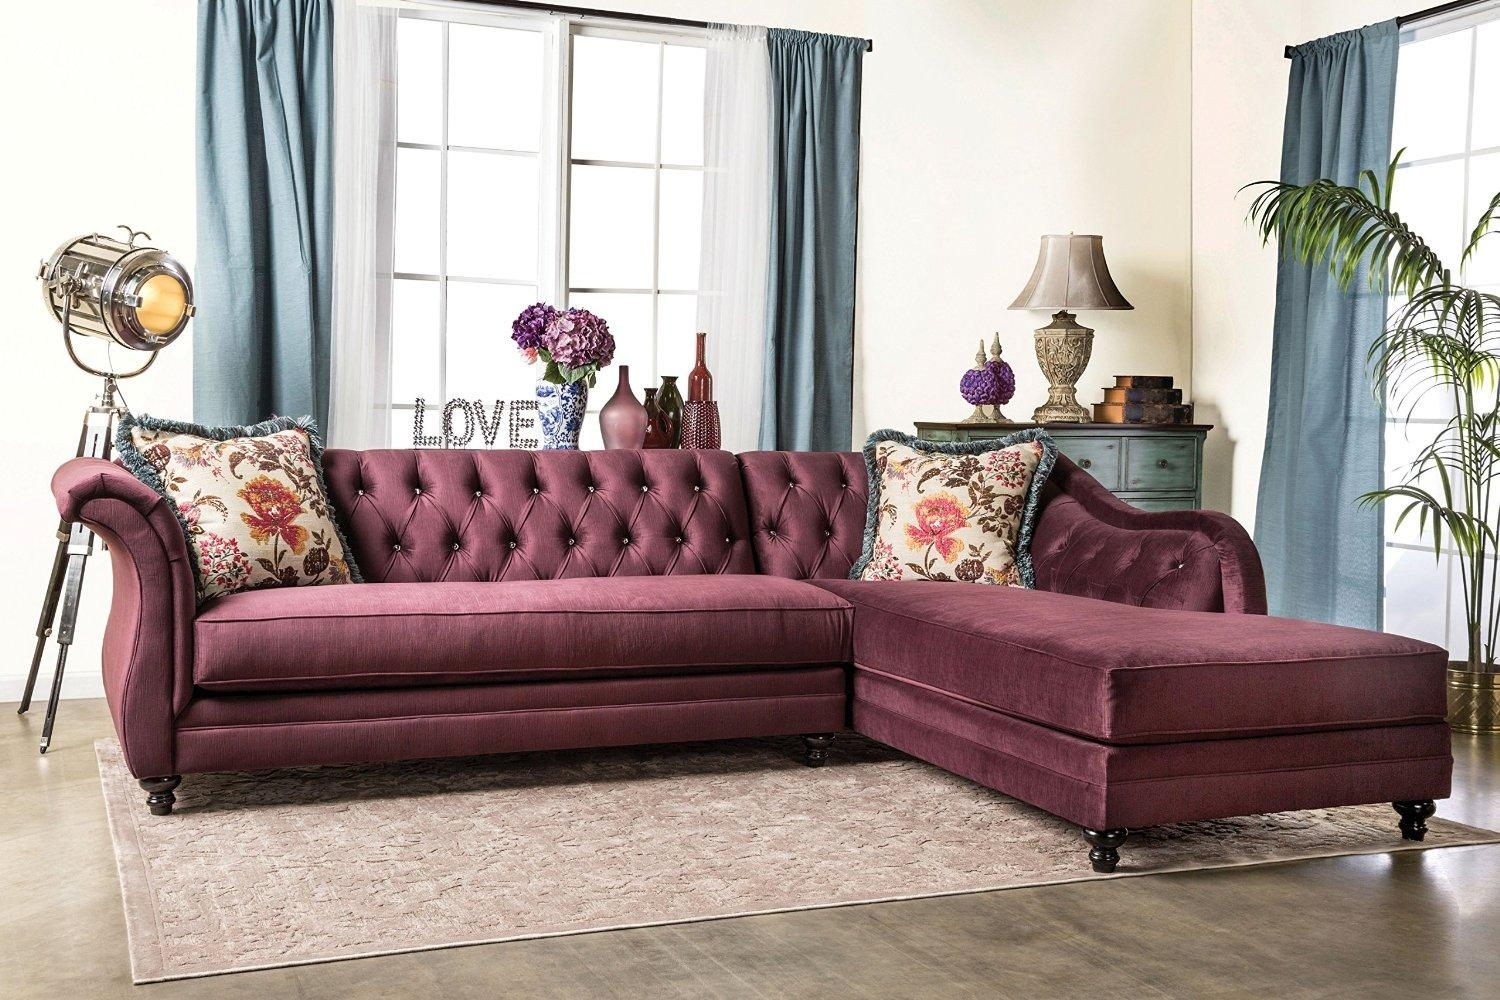 25 Best Chesterfield Sofas To Buy In 2017 throughout Chesterfield Sofas